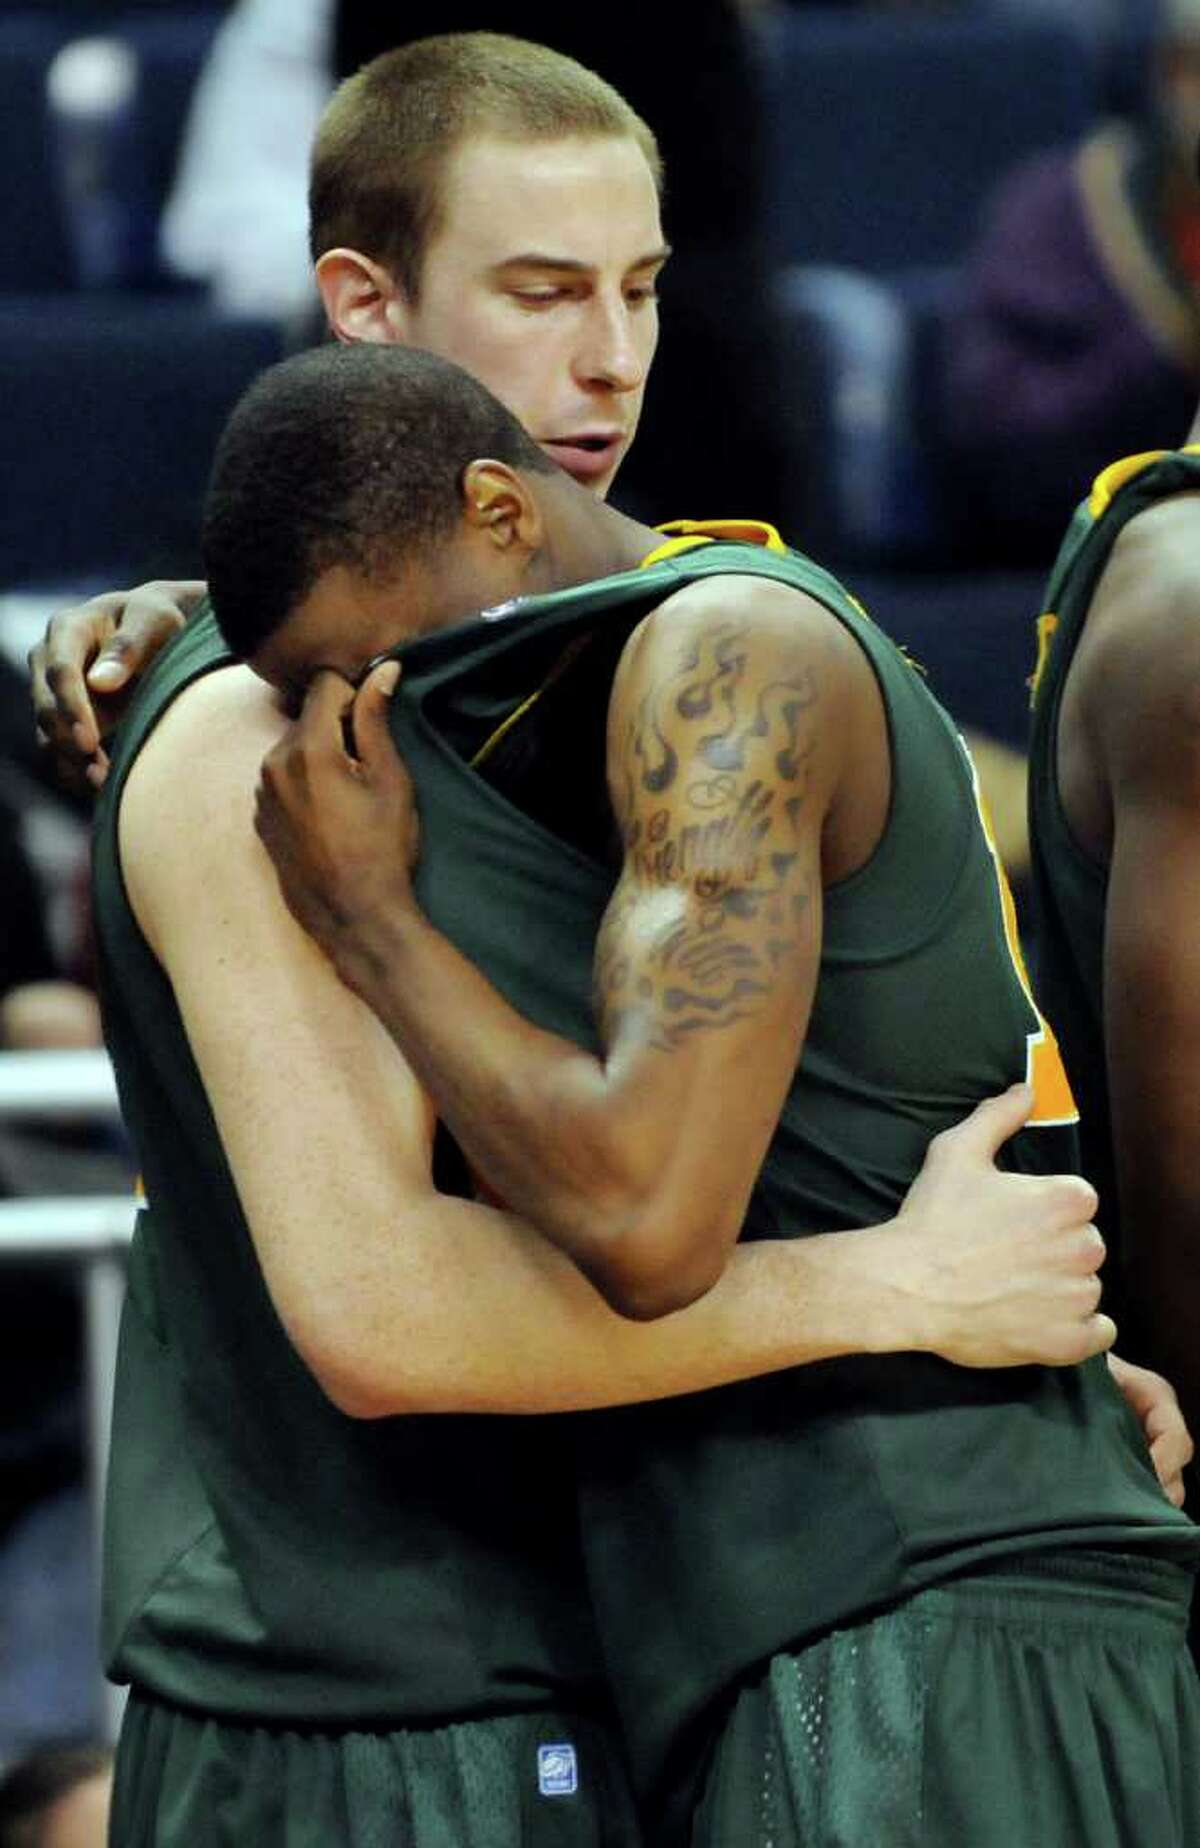 Siena's Clarence Jackson, right, is consoled by teammate Owen Wignot when they lose to Iona in their basketball game at the MAAC Championships on Saturday, March 5, 2011, at Webster Bank Arena at Harbor Yard in Bridgeport, Conn. (Cindy Schultz / Times Union)